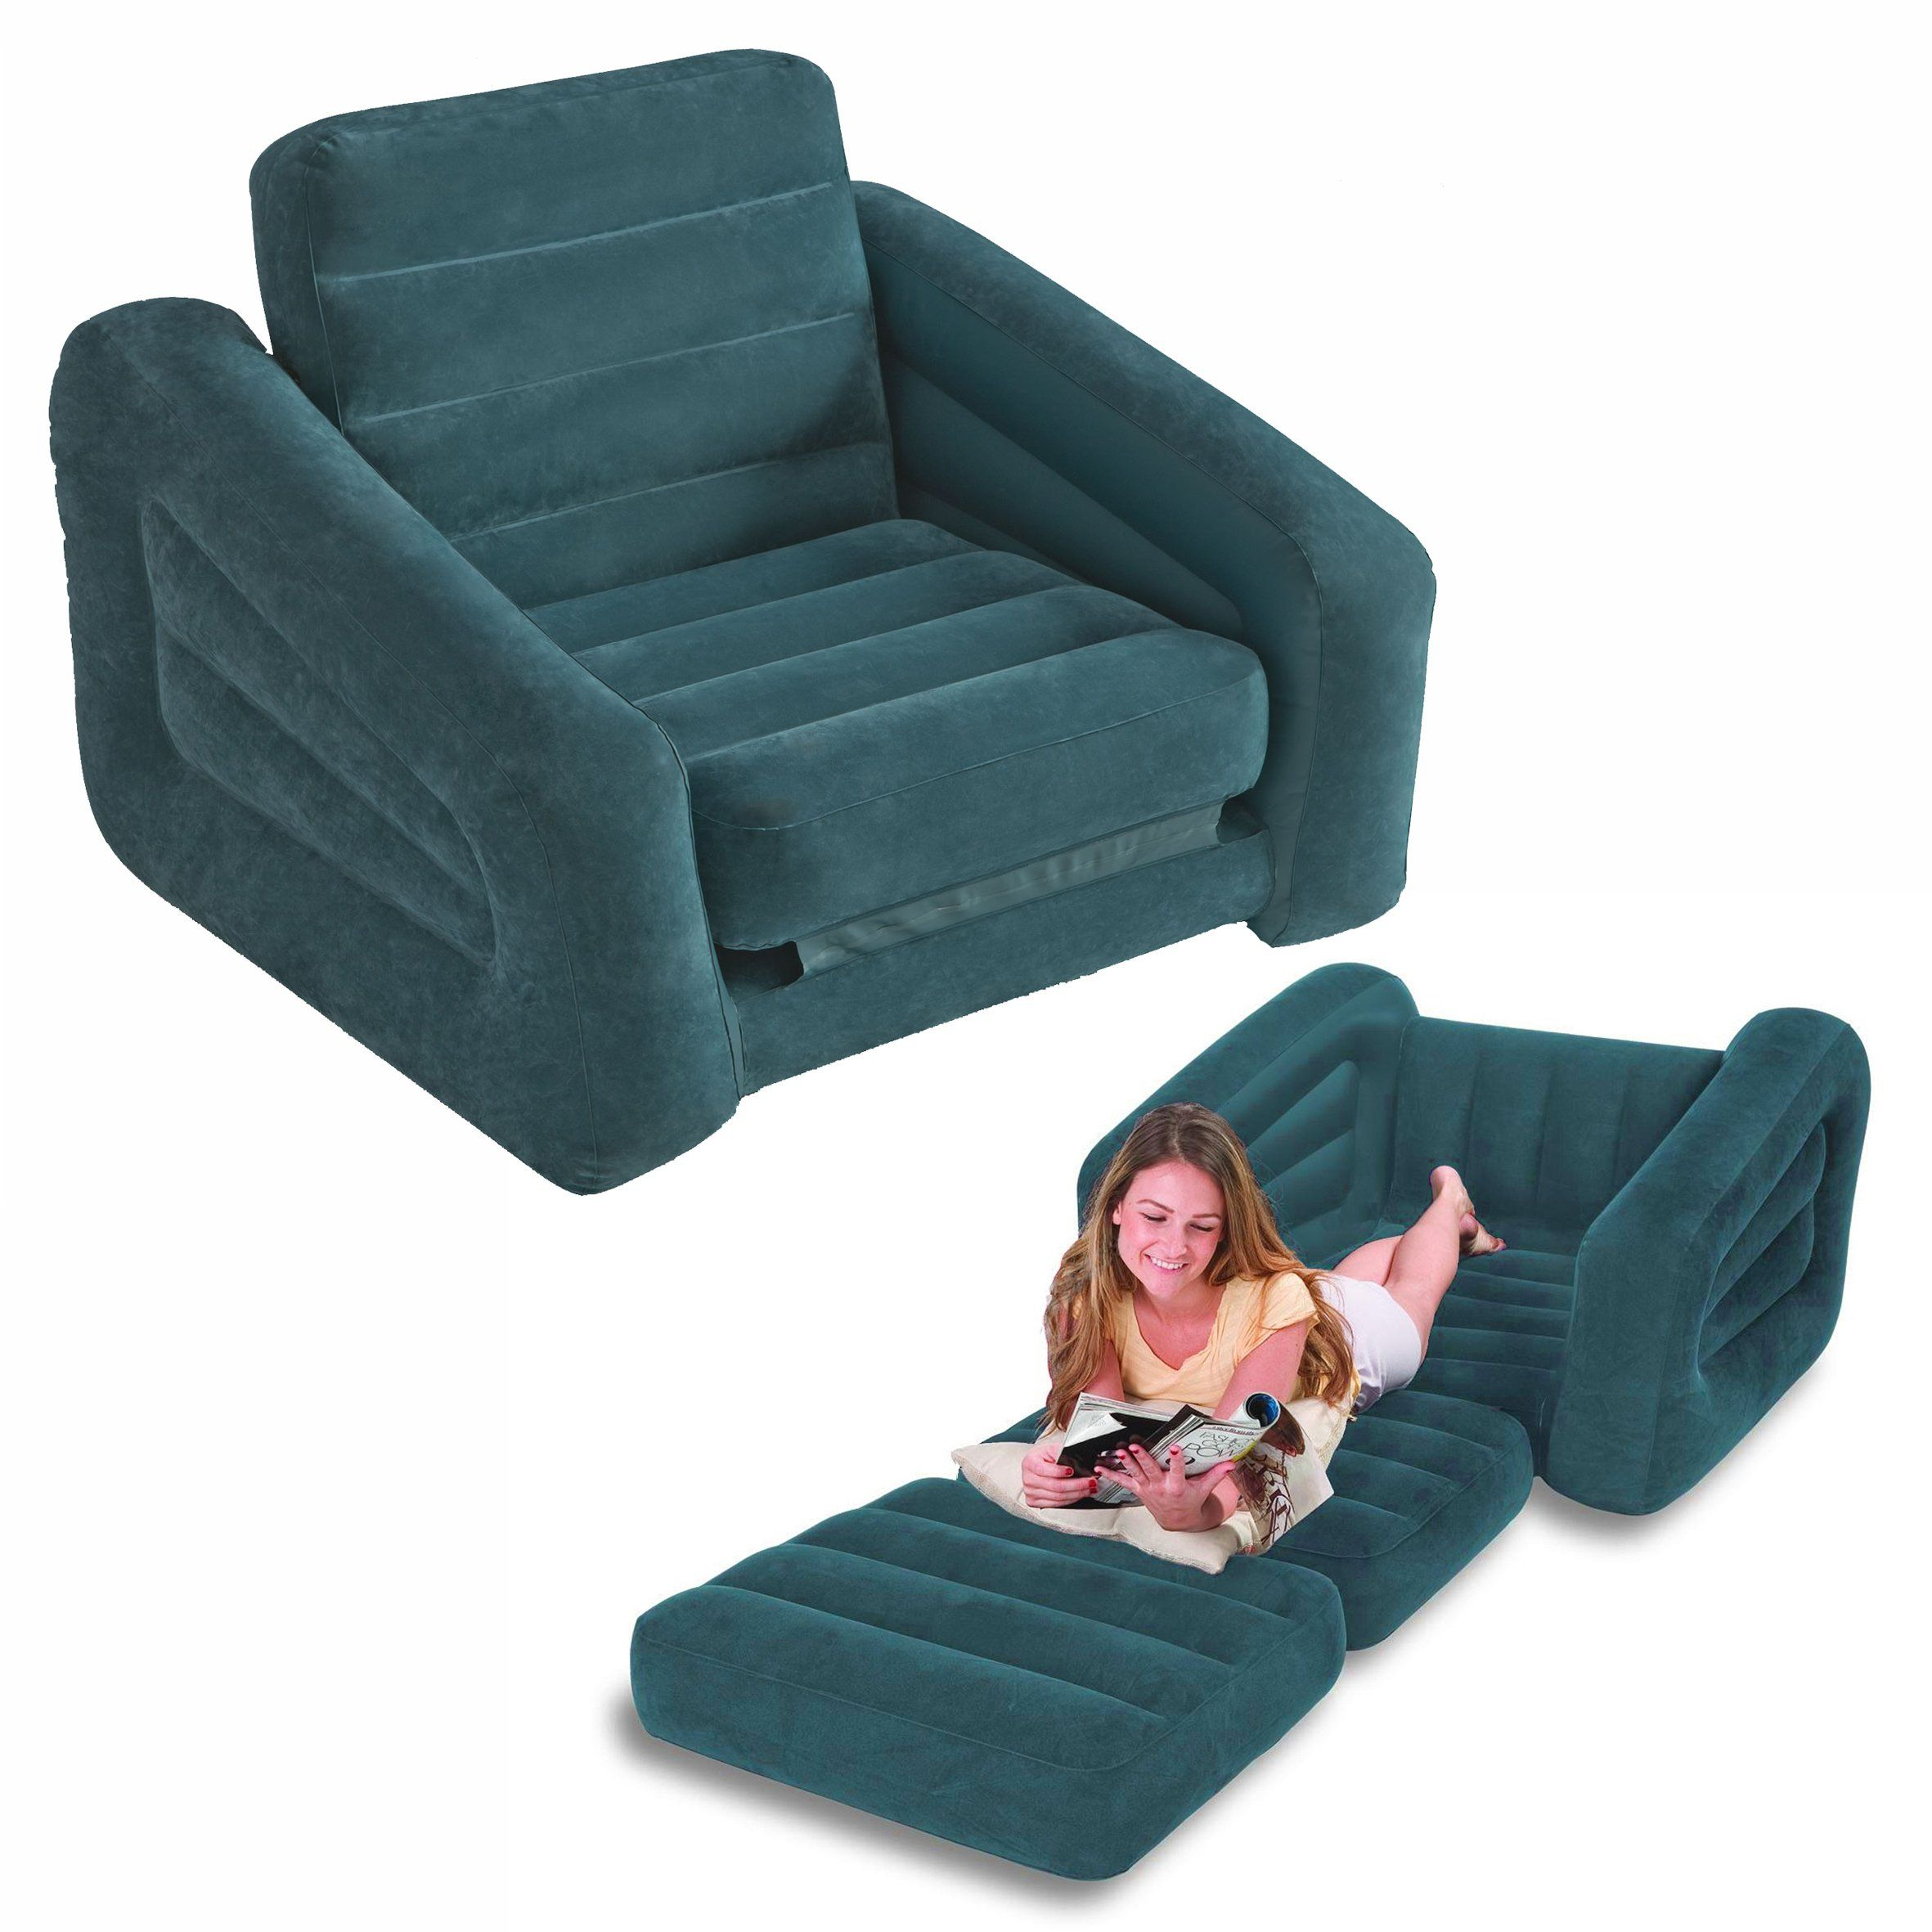 intex inflatable sofa set of two pieces simply shabby chic cotton duck slipcover one person pull out chair bed